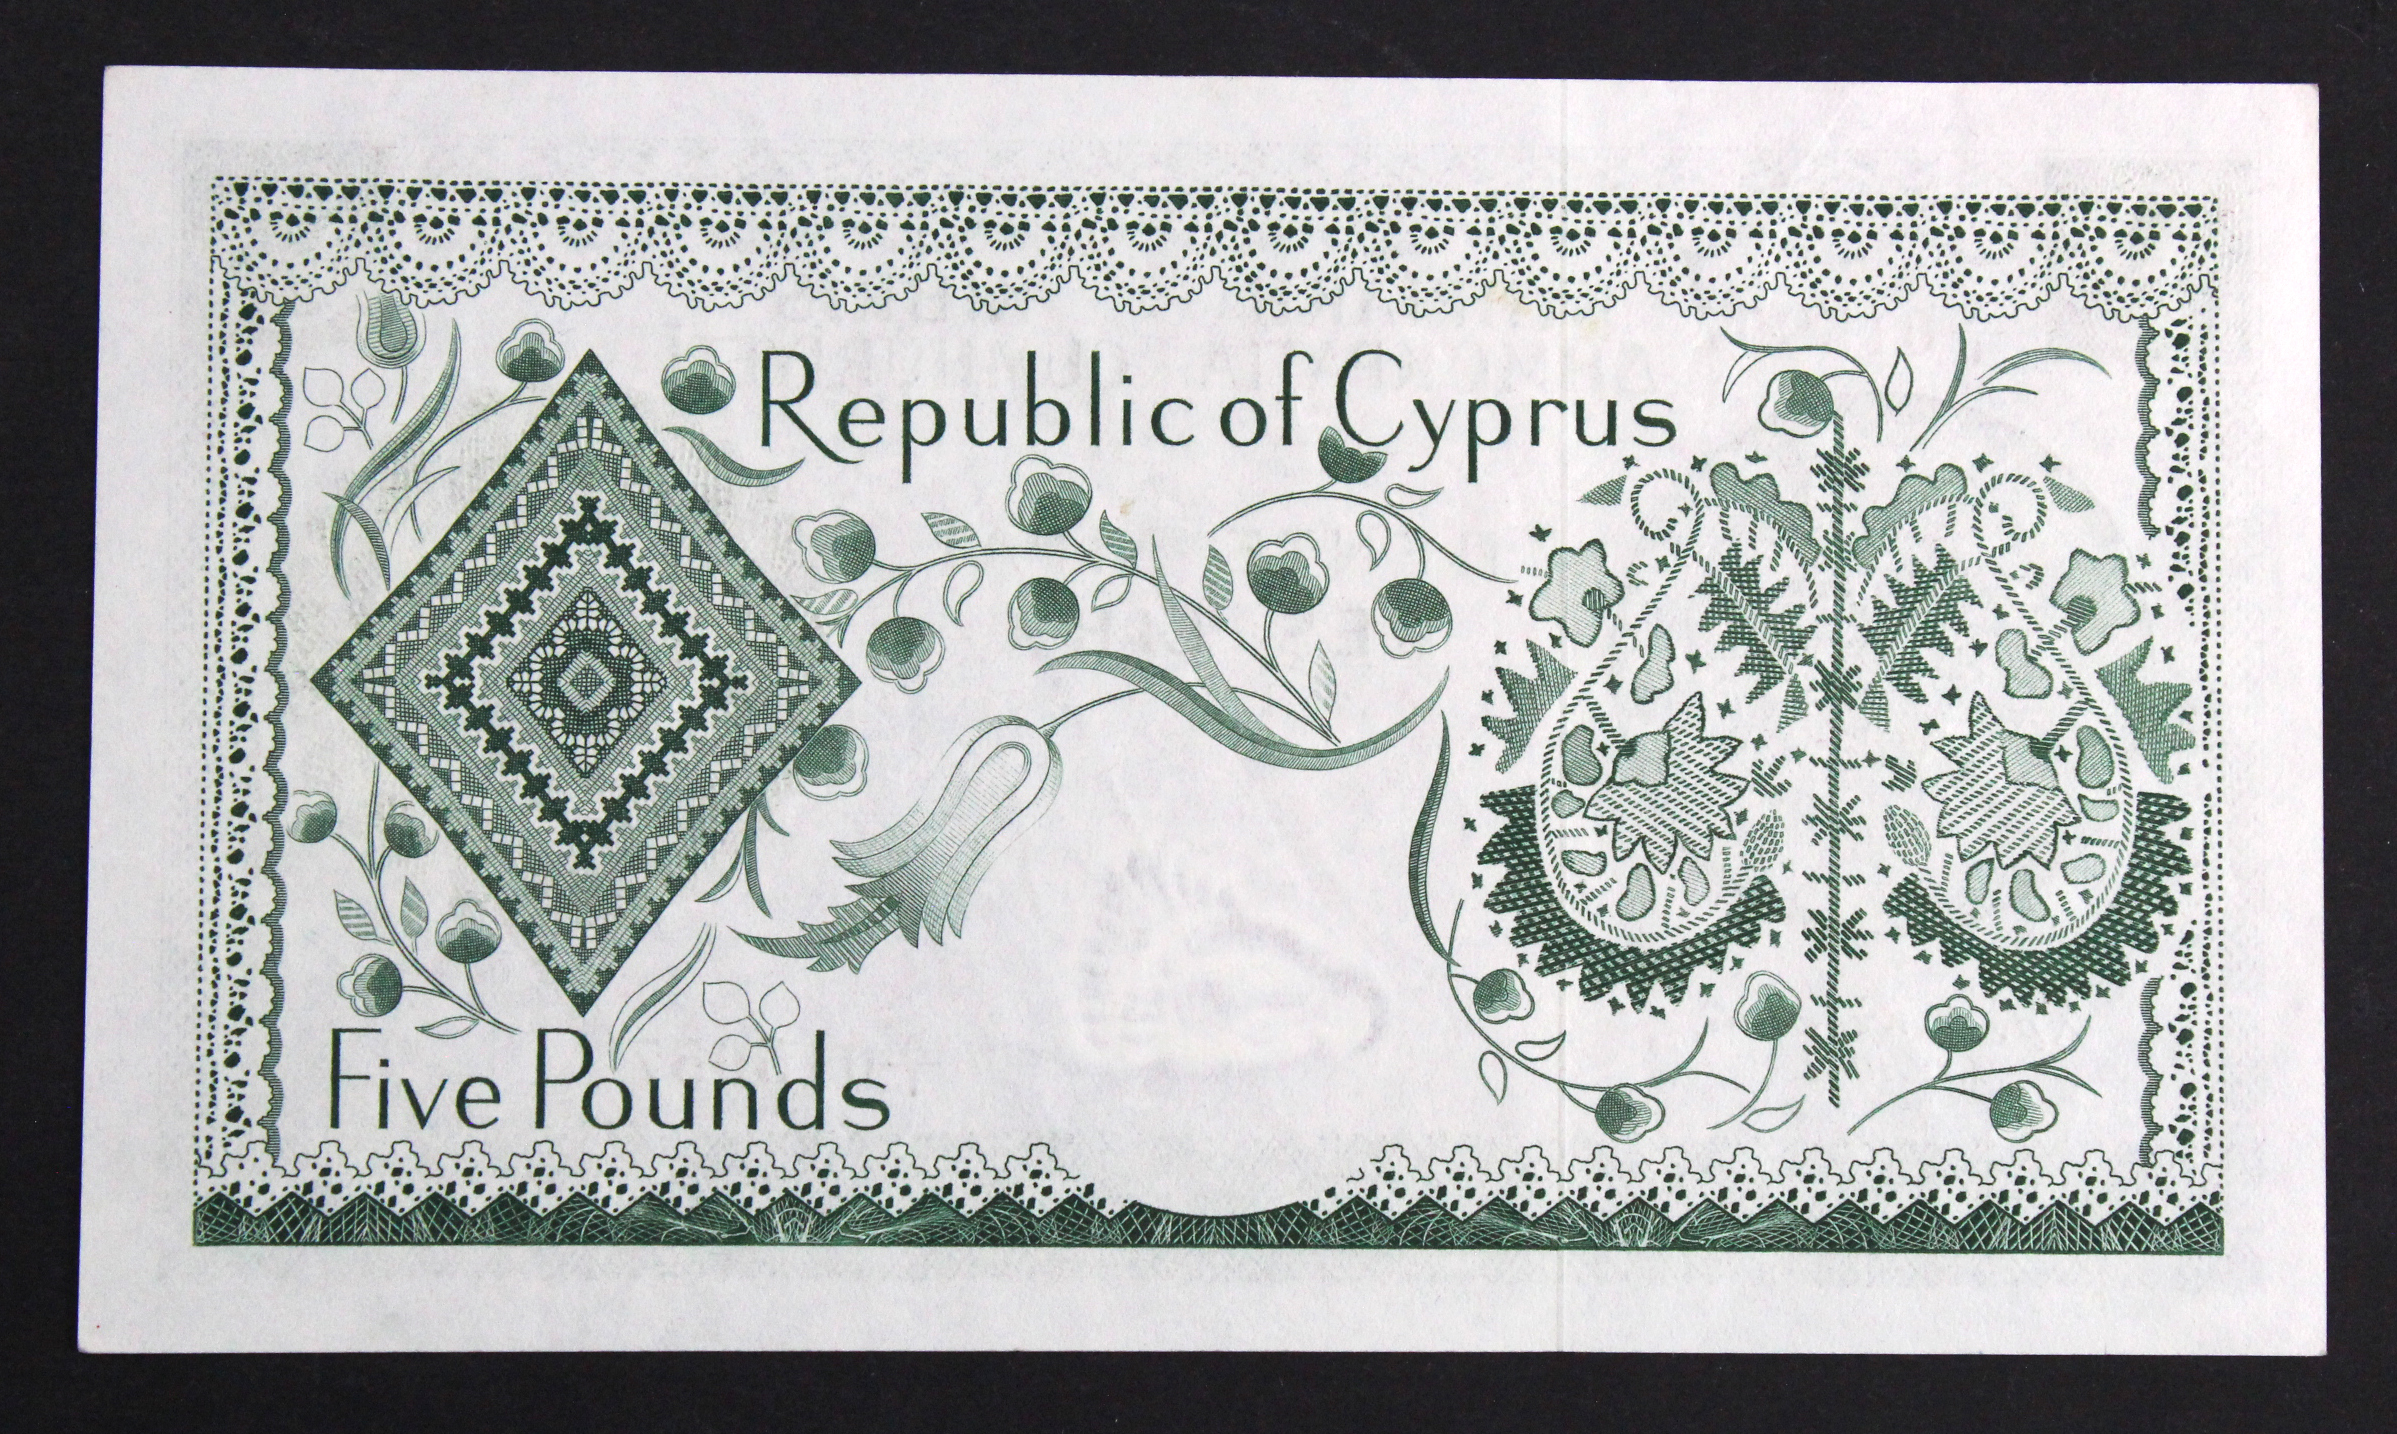 Cyprus 5 Pounds dated 1st December 1961, first date and first prefix of issue, A/1 015957 (TBB - Image 2 of 2